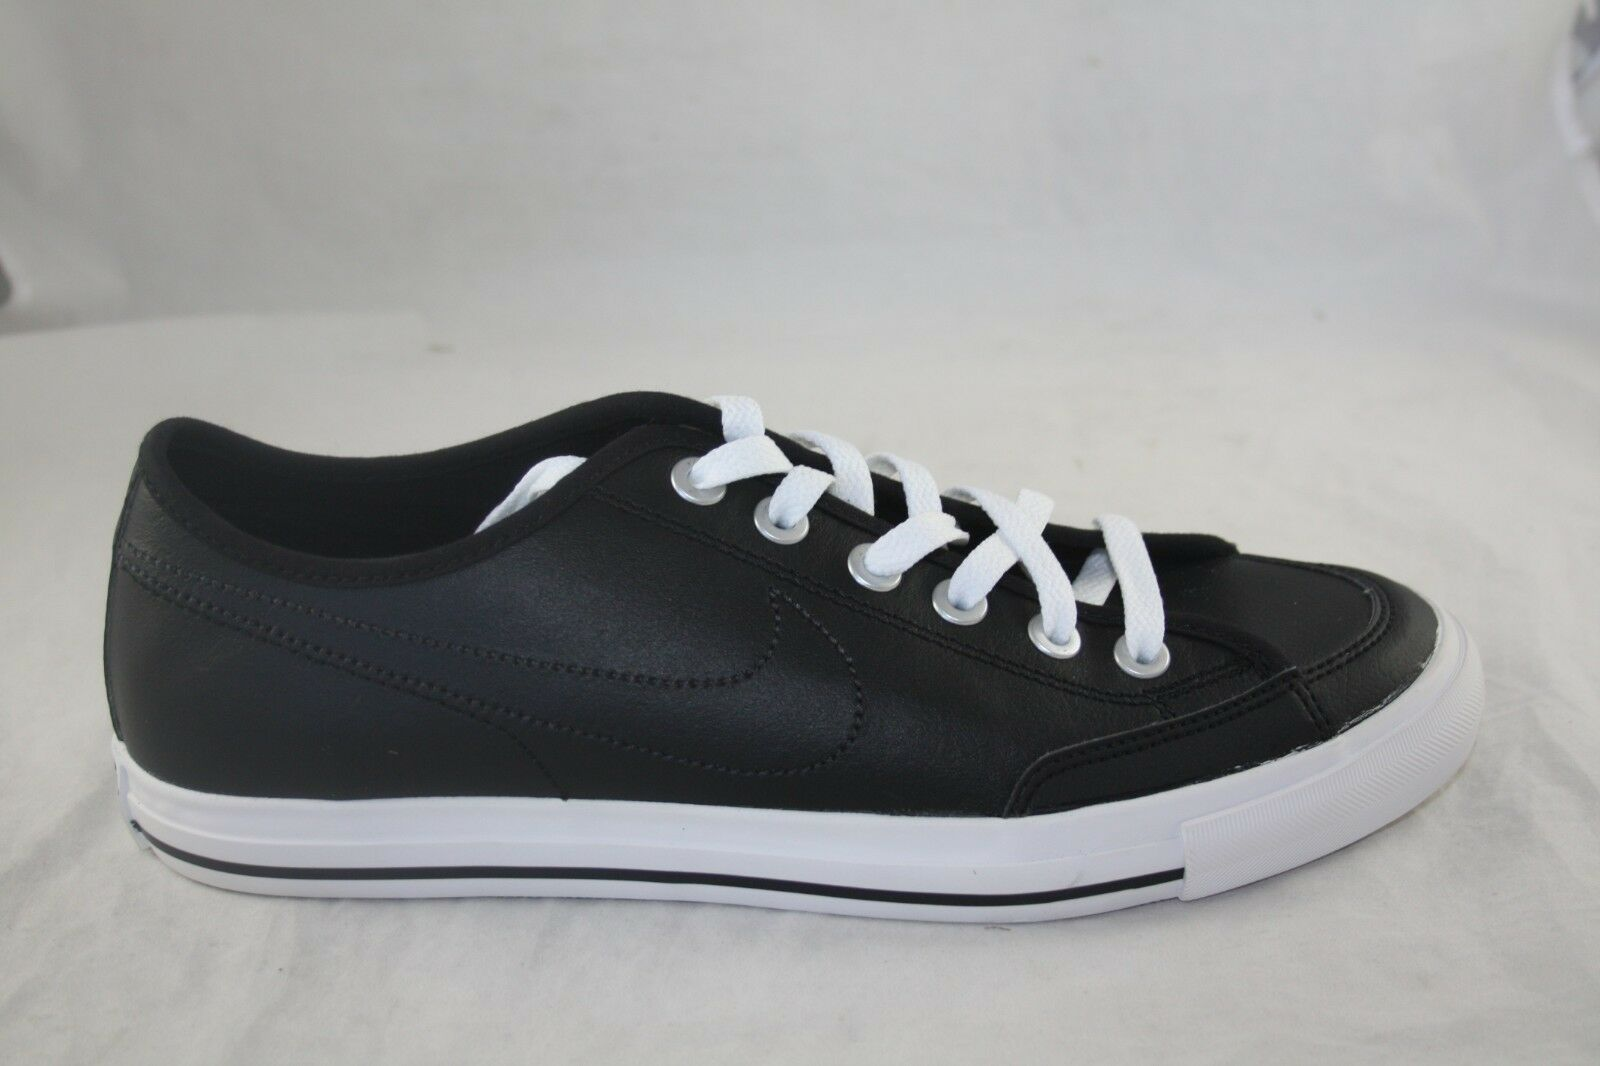 8a0c7e85729 Man Woman NIKE NIKE NIKE GO 454396-002 BLACK BLACK-WHITE-ANTHRACITE ...